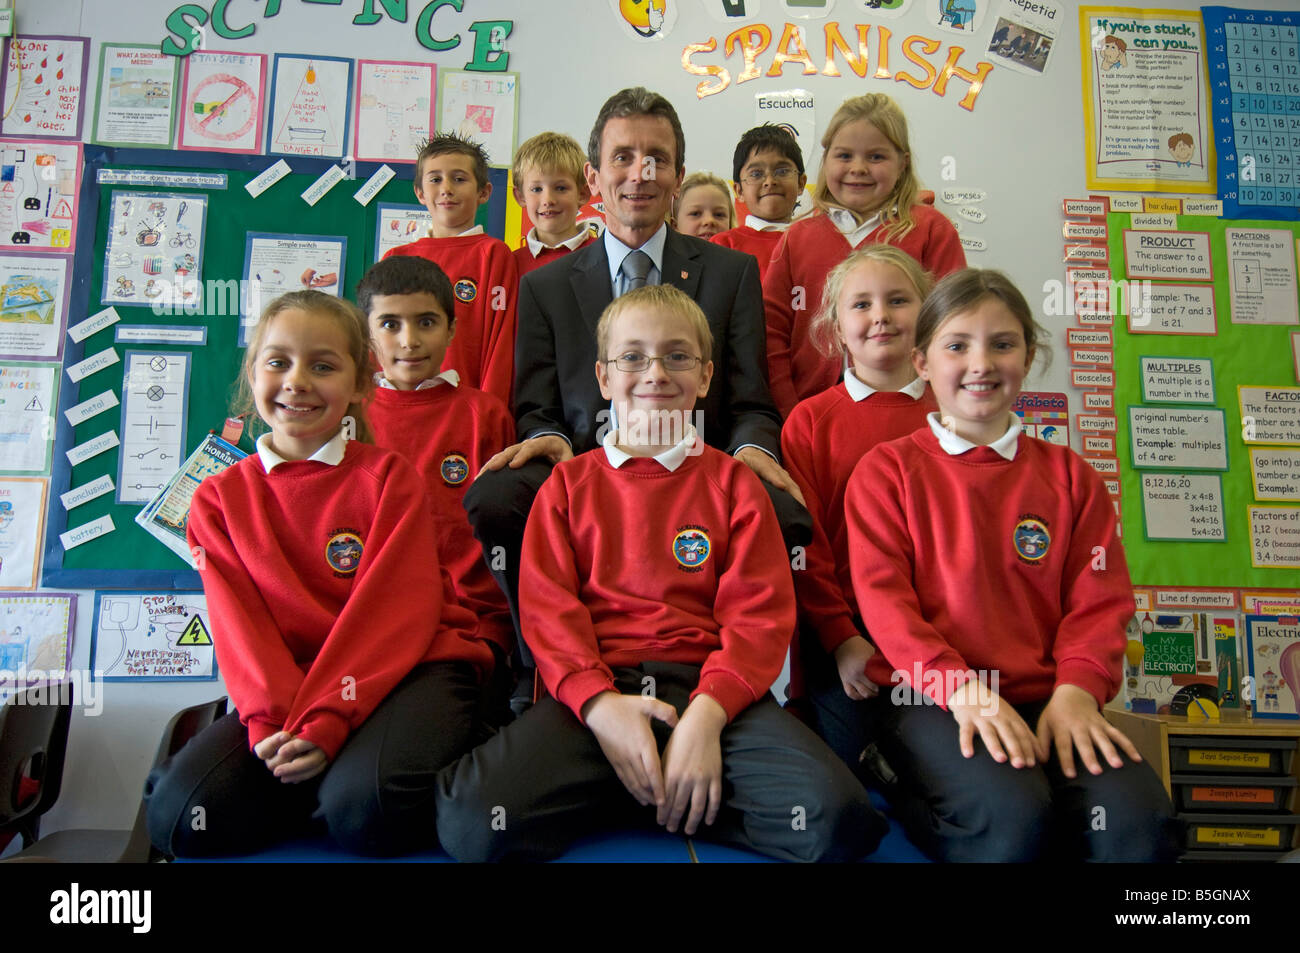 A primary school headmaster with pupils in red uniform sweatshirts in a classroom Stock Photo